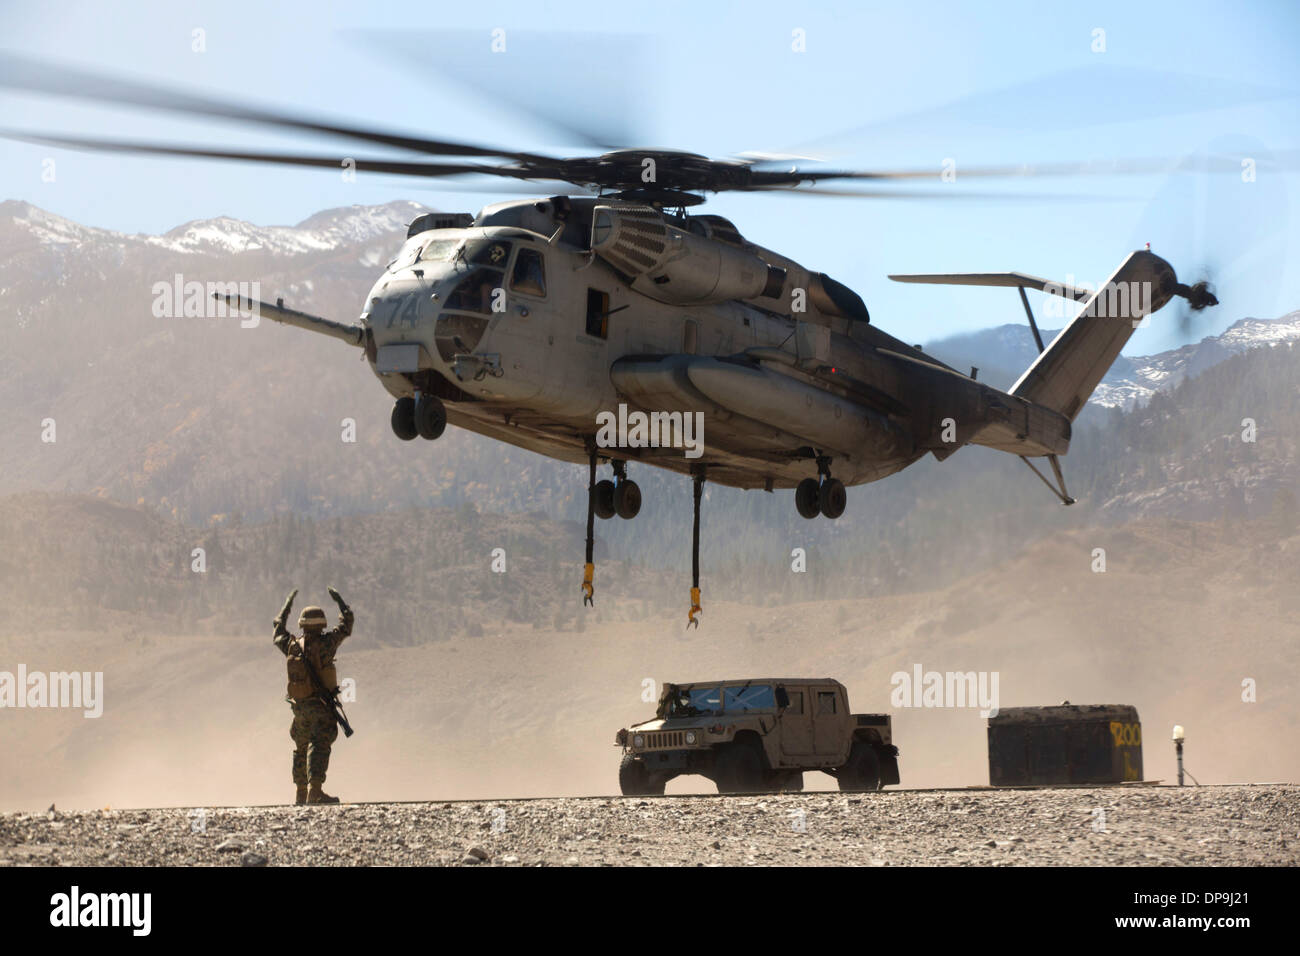 U.S. Marine directs the pilots of a CH-53E Super Stallion helicopter after releasing a Humvee Stock Photo